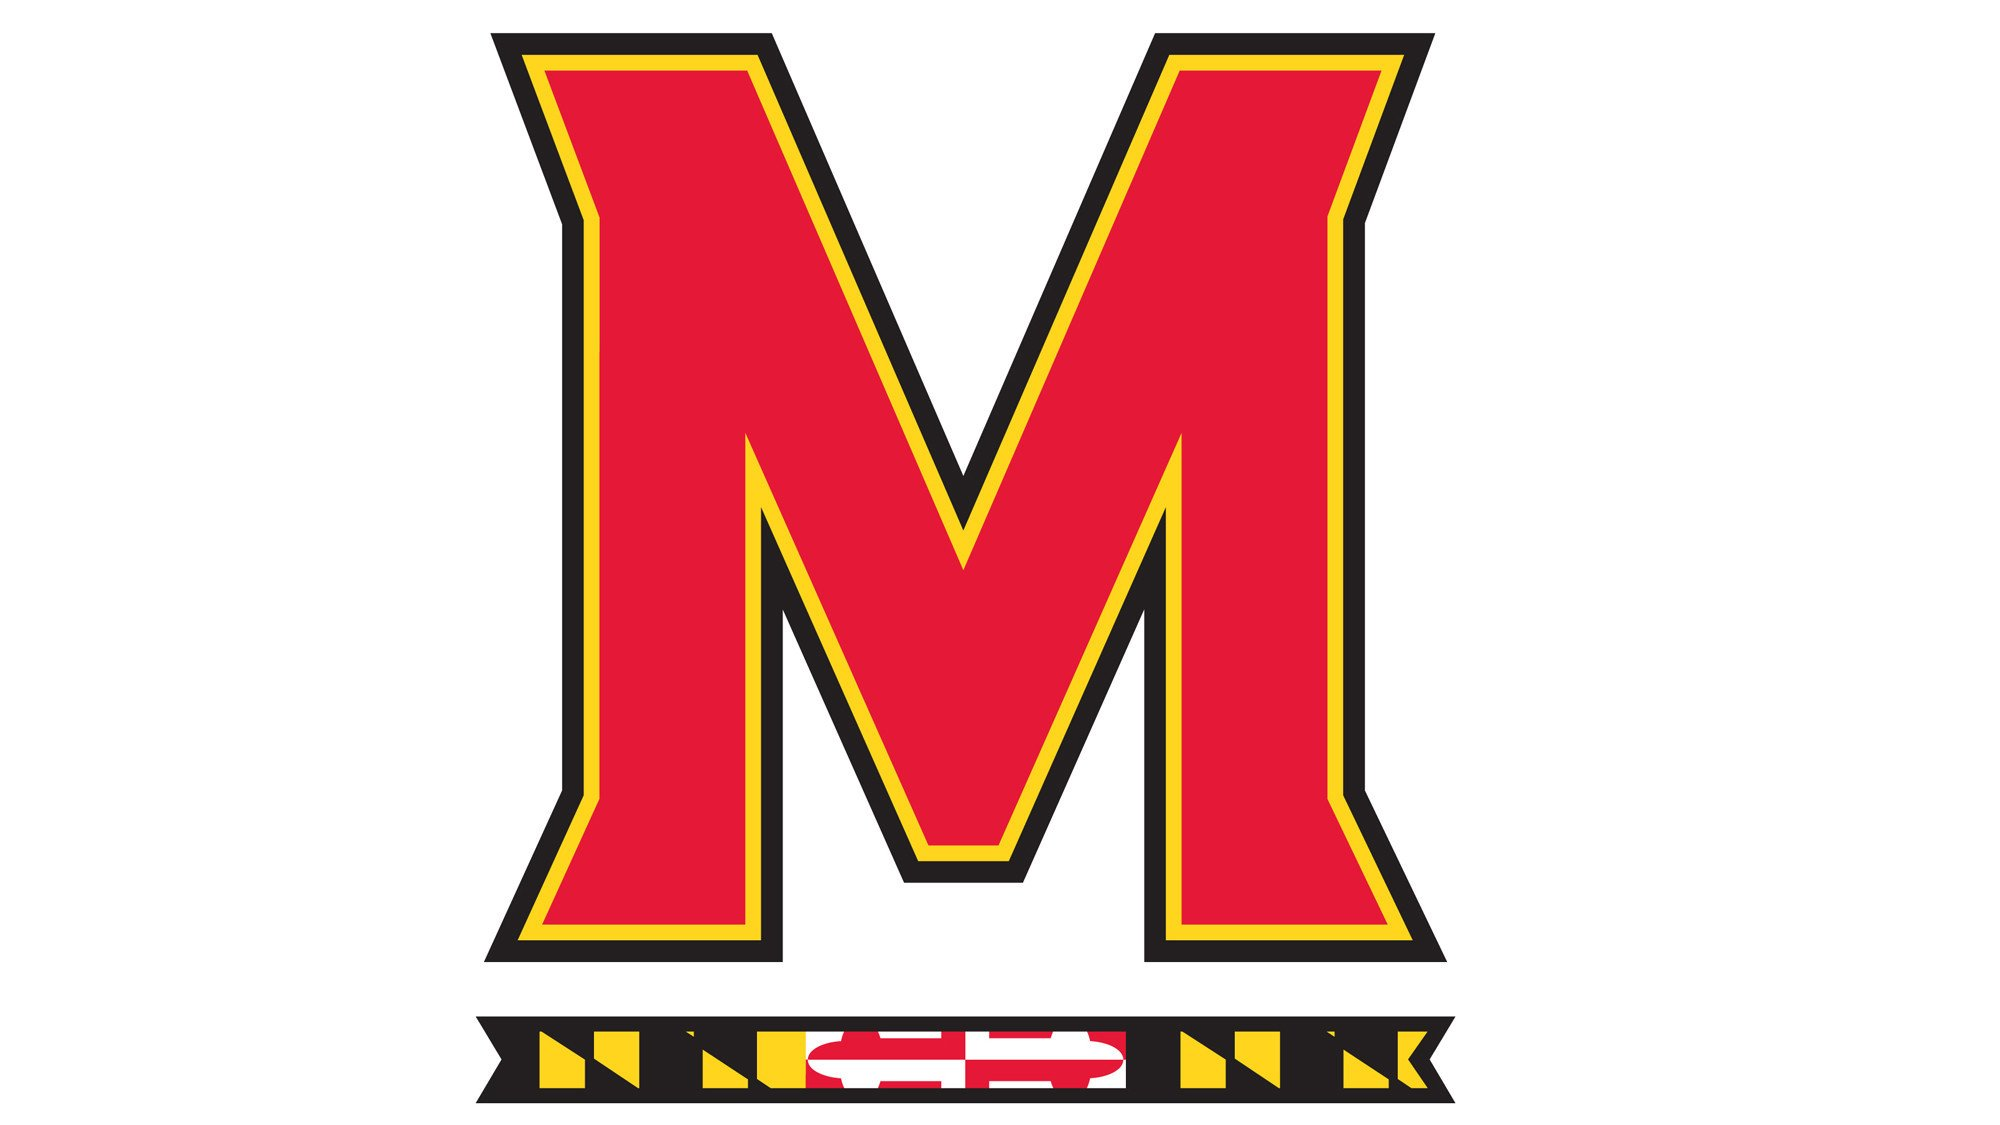 MARYLAND TERRAPINS college football wallpaper background 2000x1125